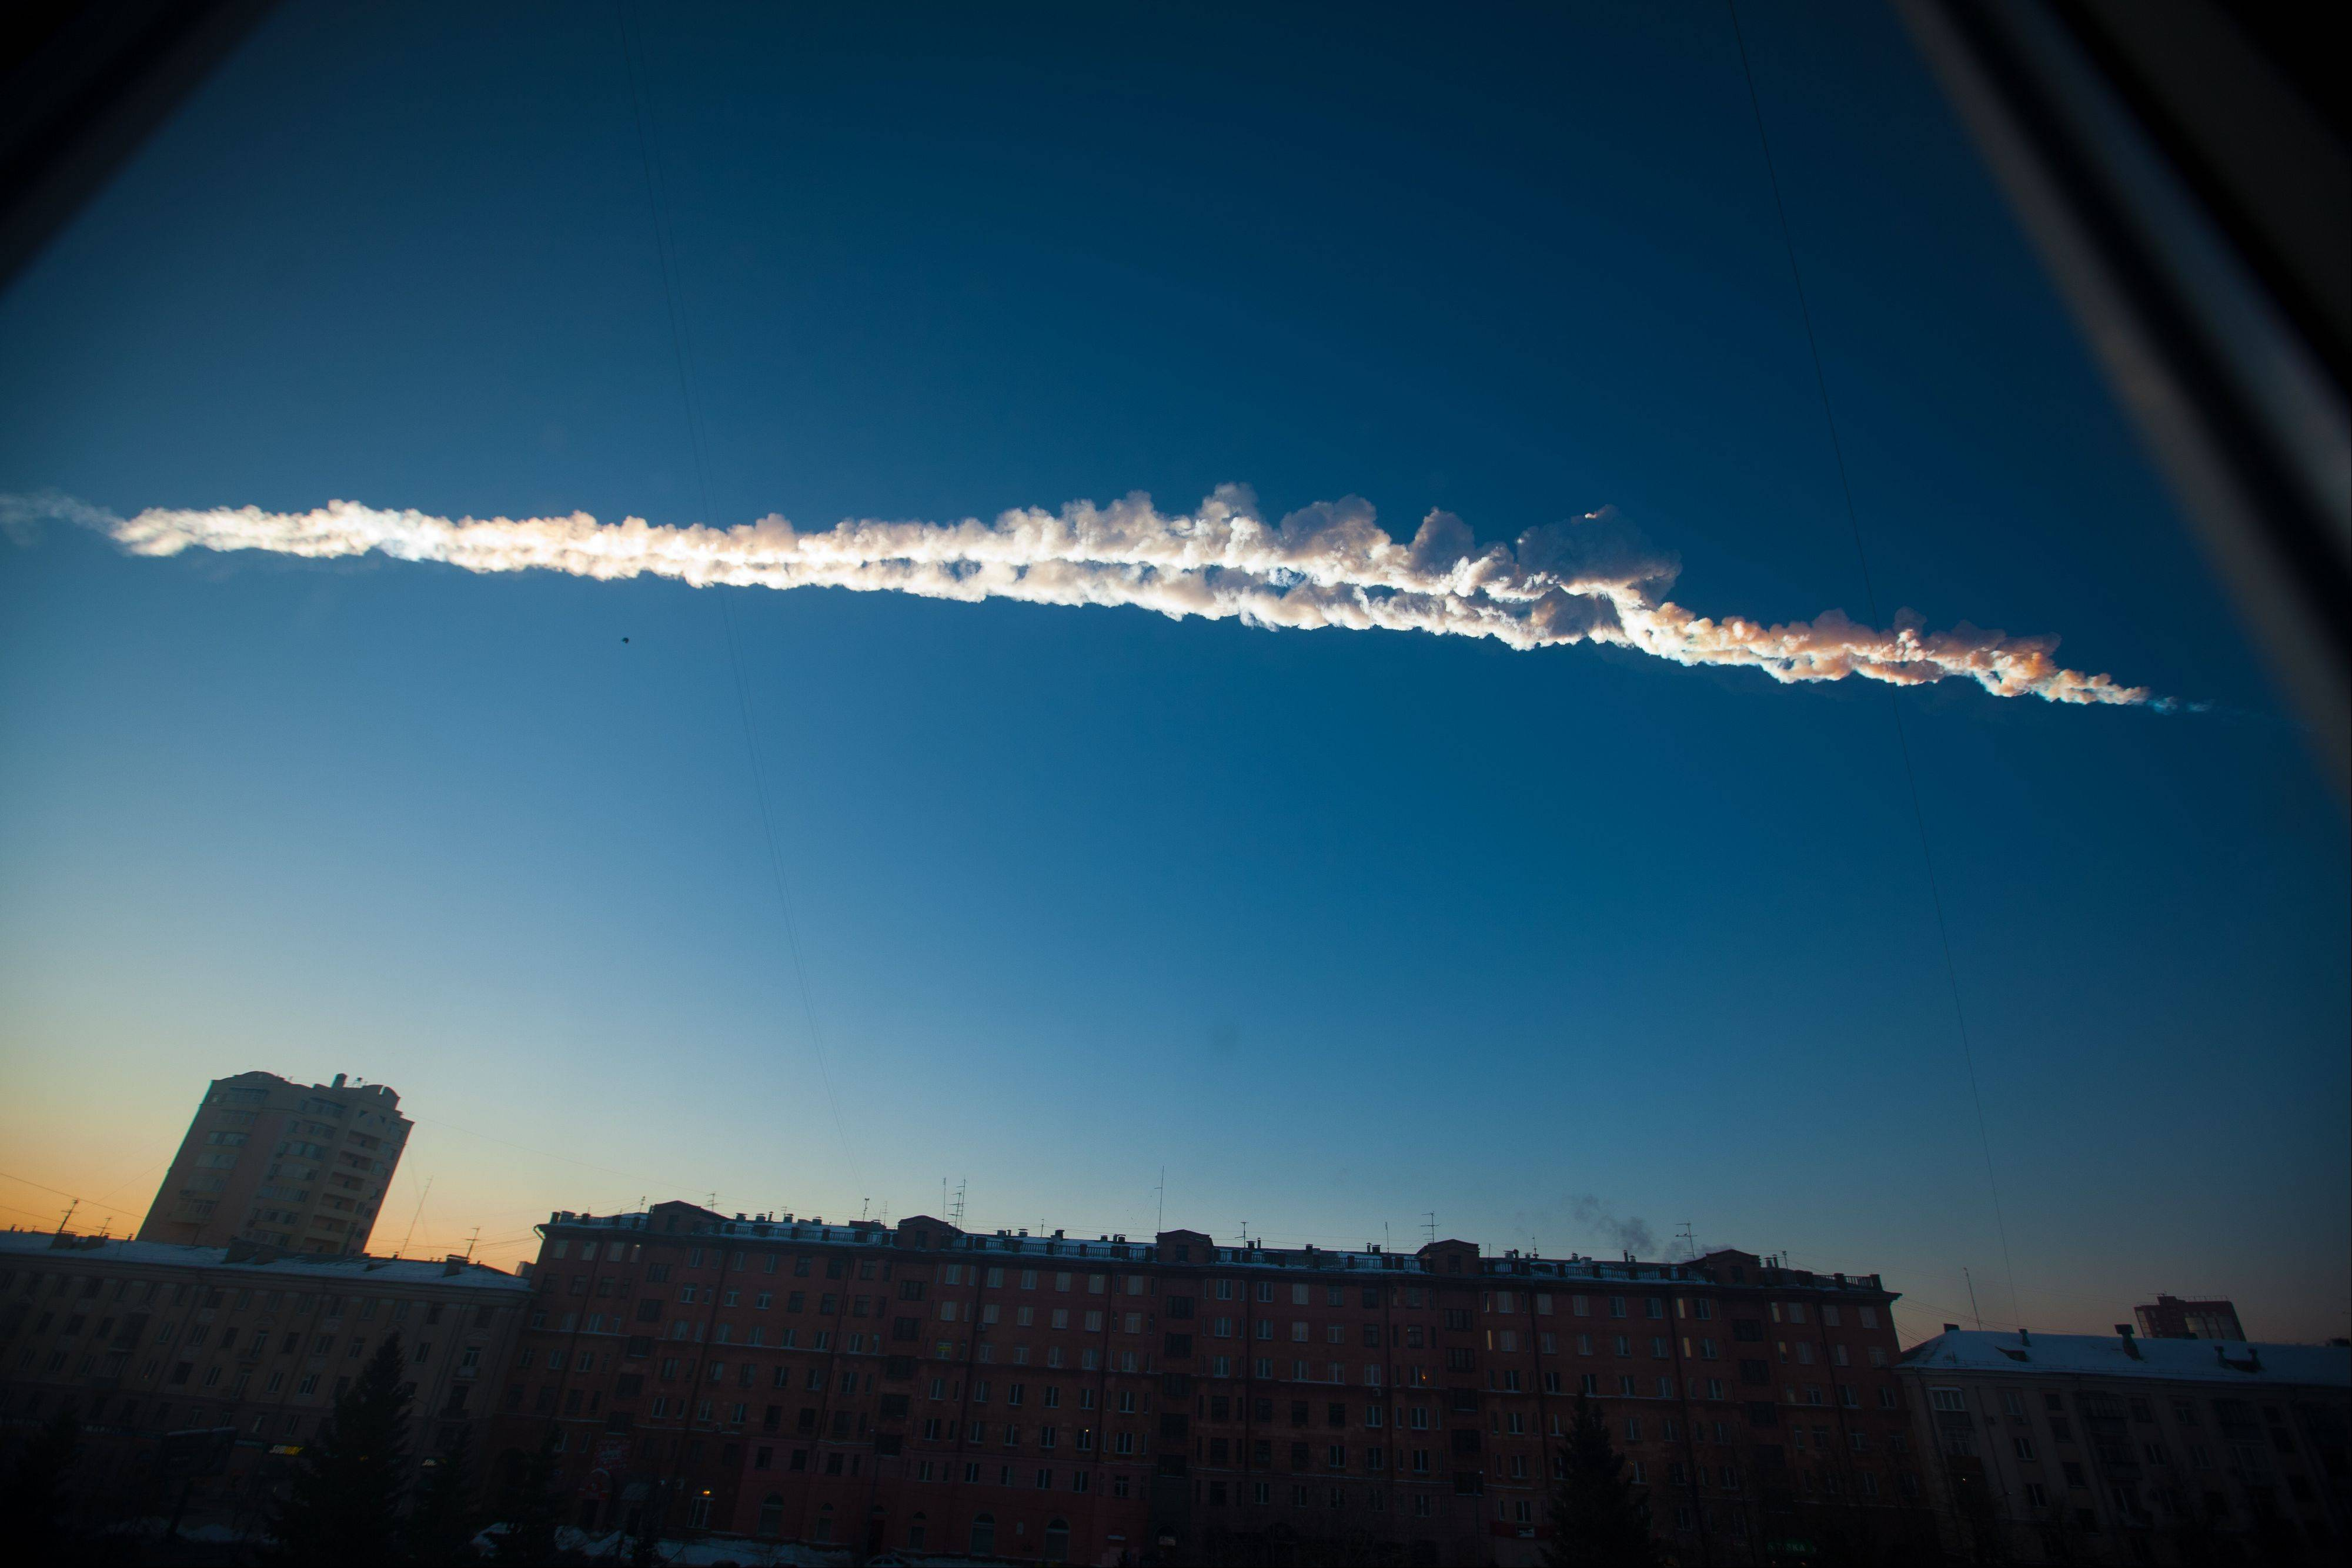 A meteor contrail is seen Friday over Chelyabinsk, Russia. A meteor streaked across the sky of Russia�s Ural Mountains on Friday morning, causing sharp explosions and reportedly injuring nearly 1,000 people, including many hurt by broken glass.